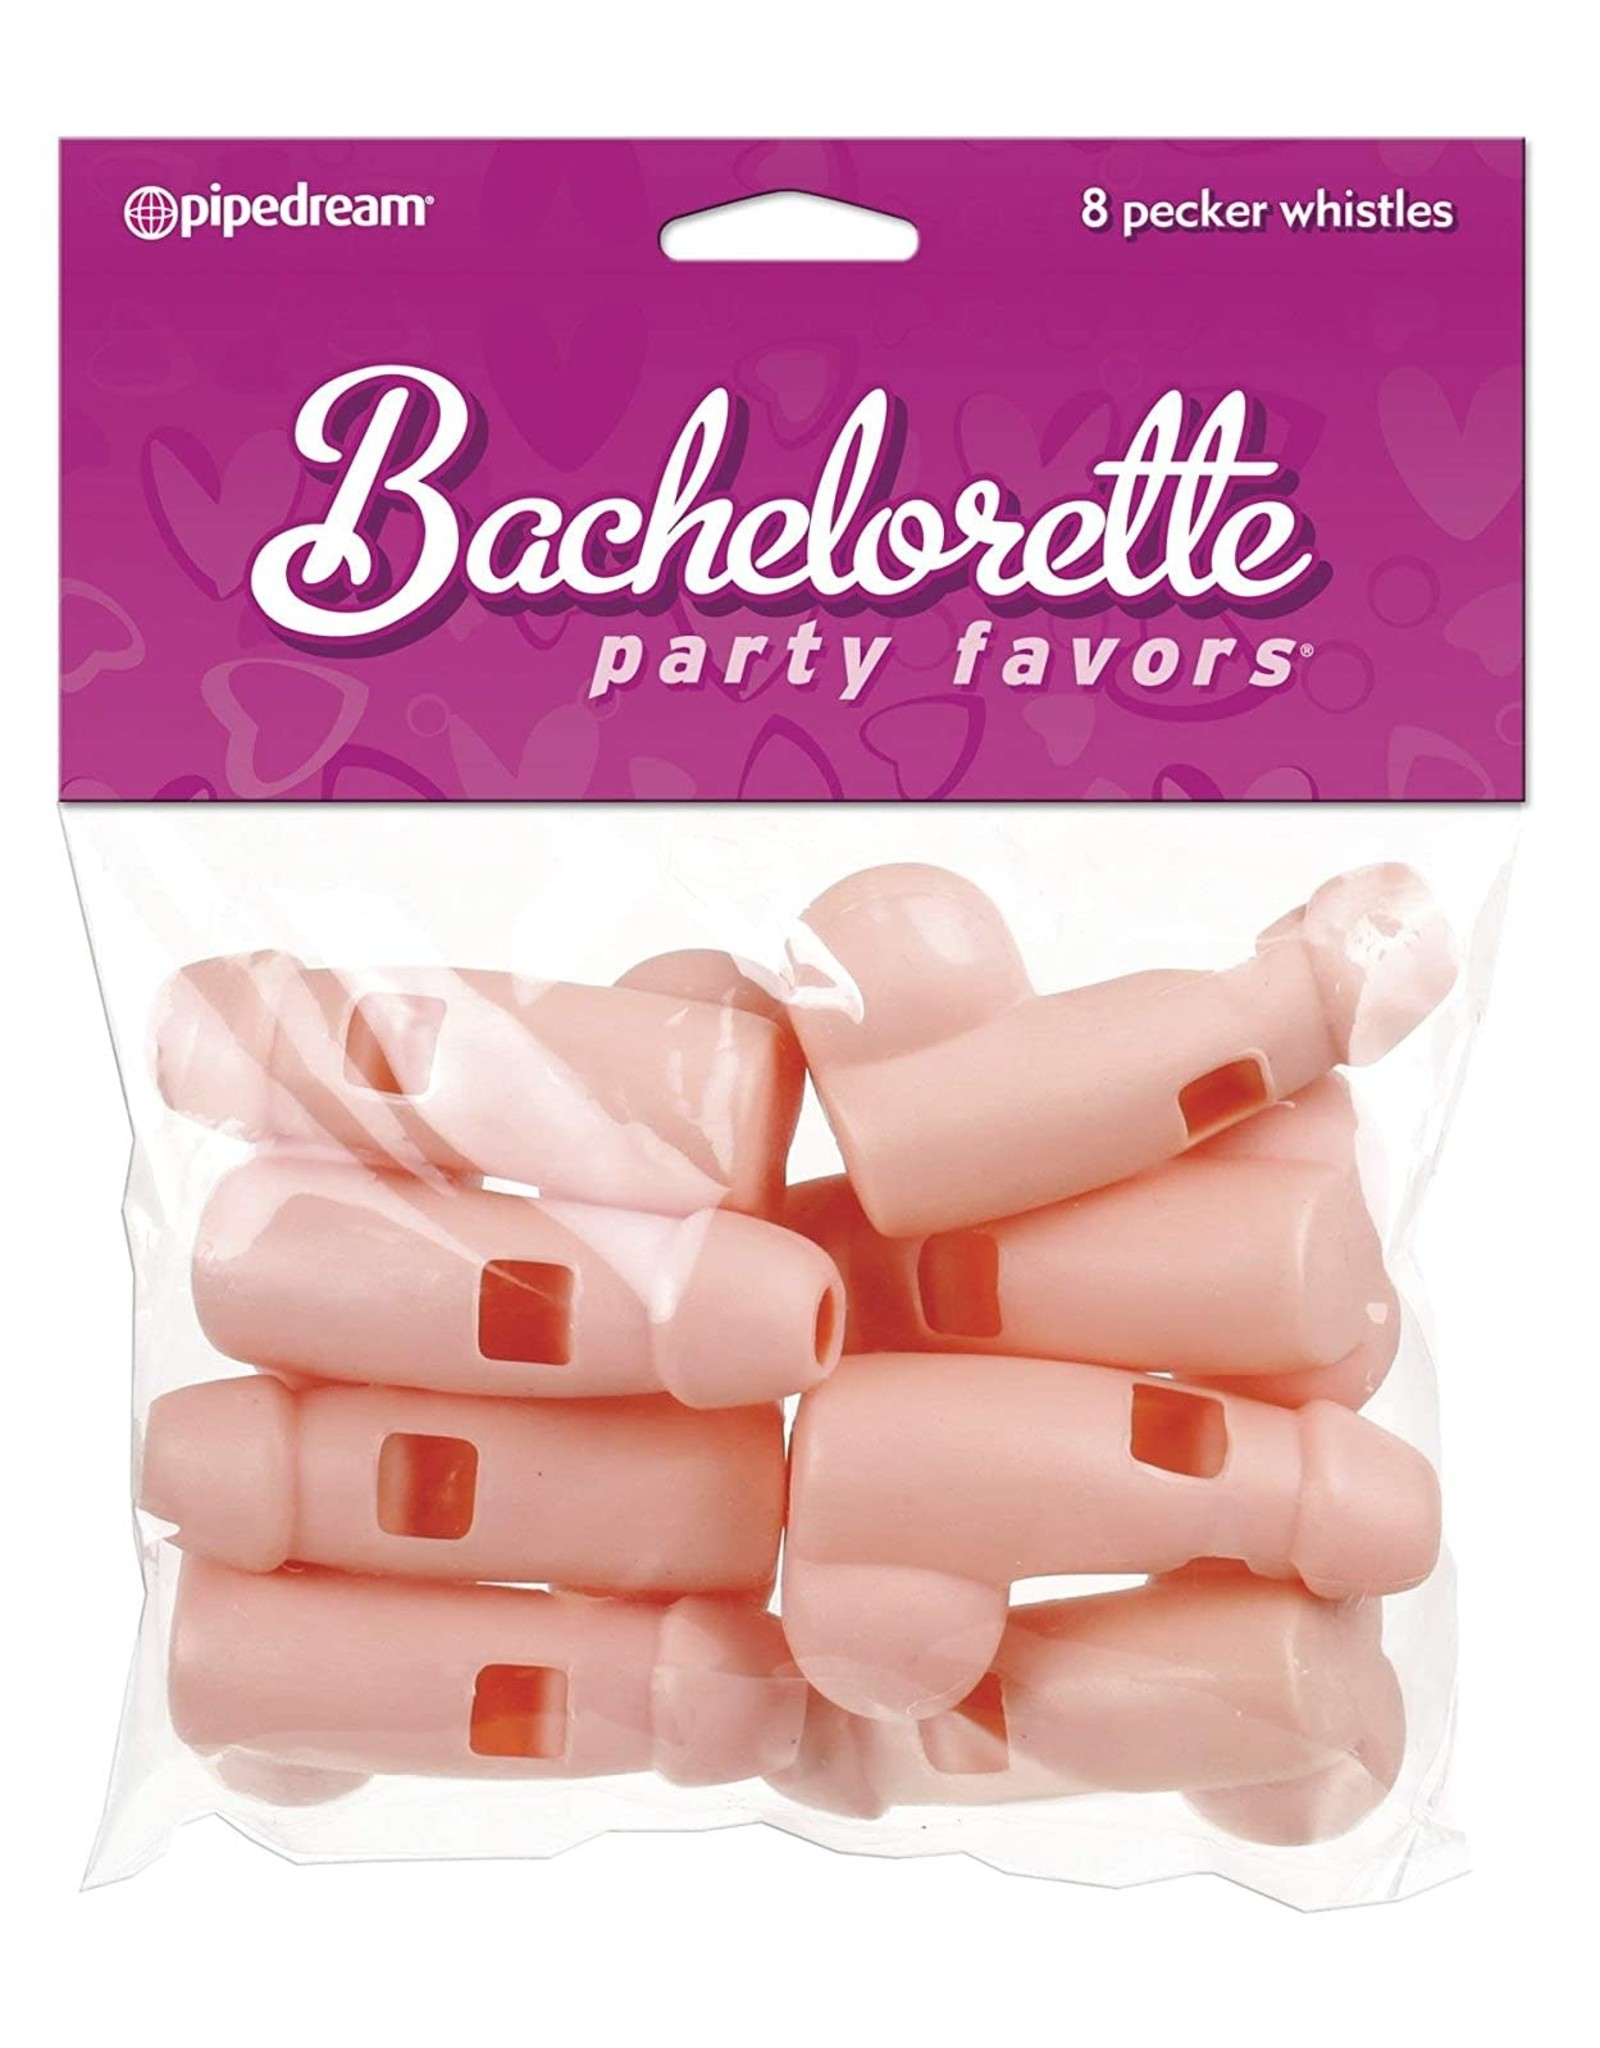 BACHELORETTE - PECKER WHISTLE - 8 PIECES